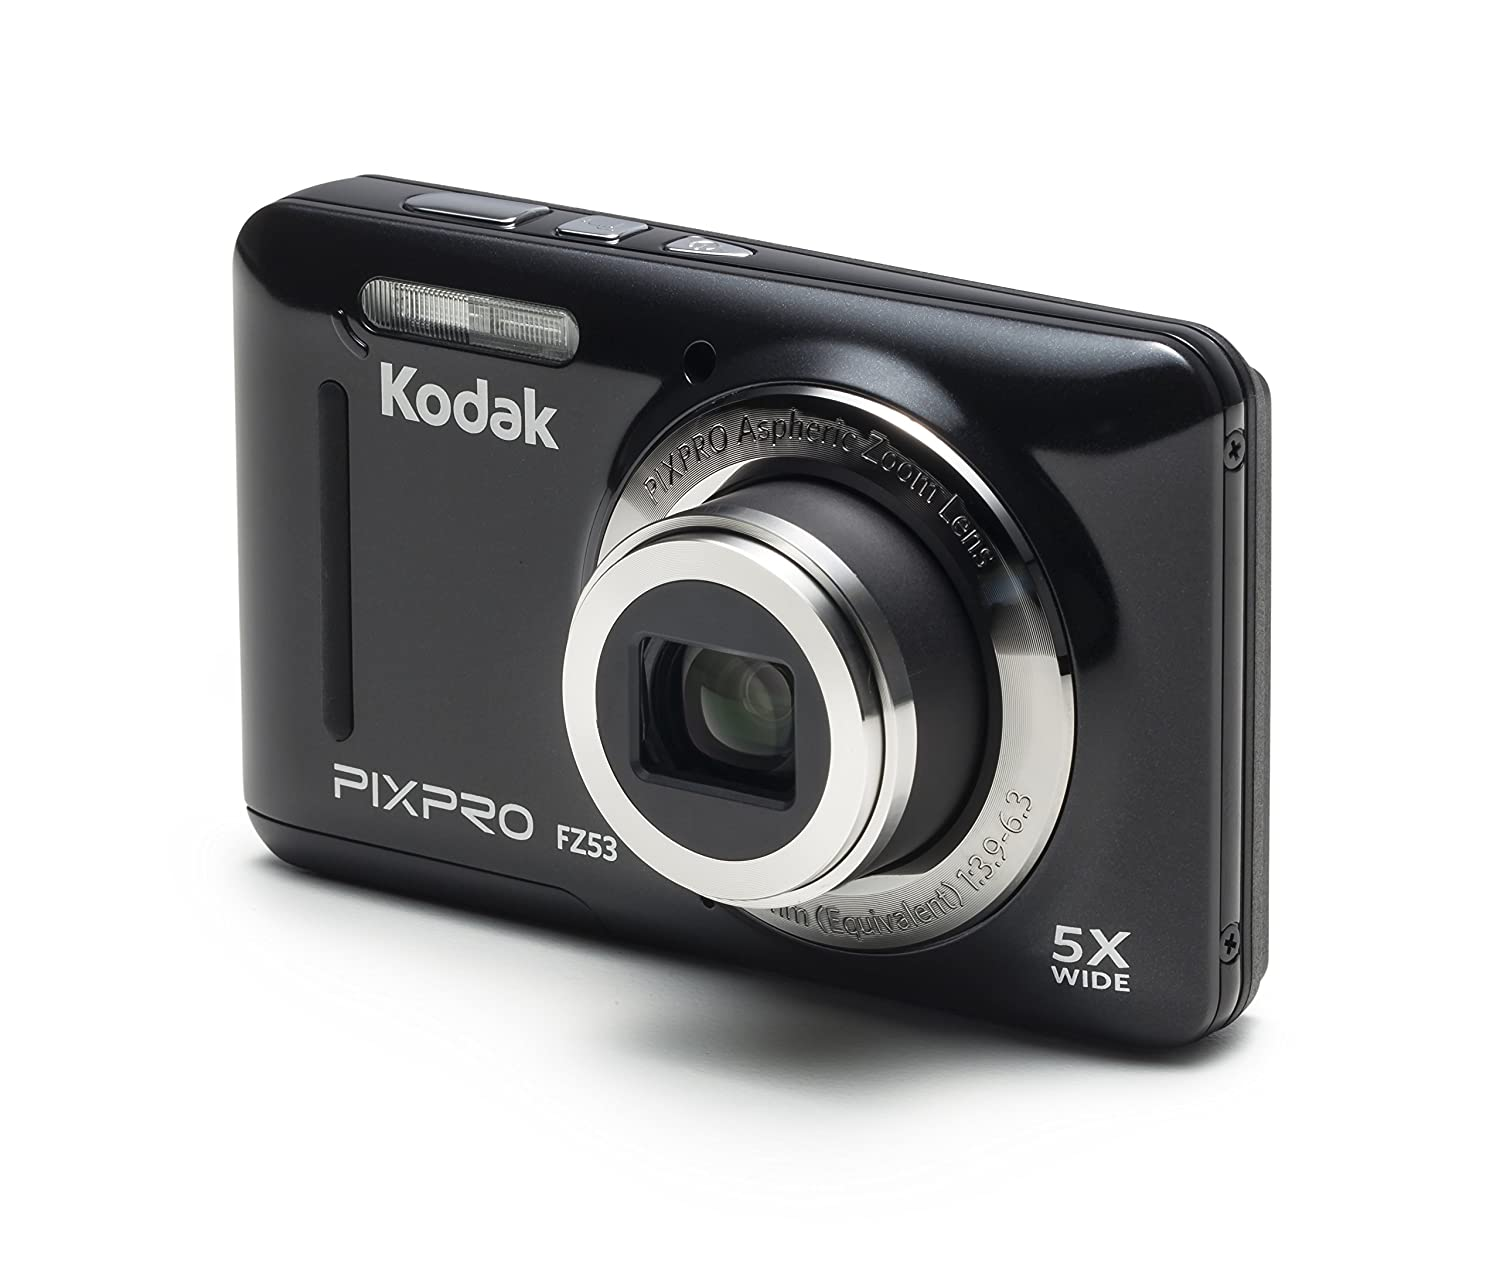 Kodak PIXPRO FZ53 Review